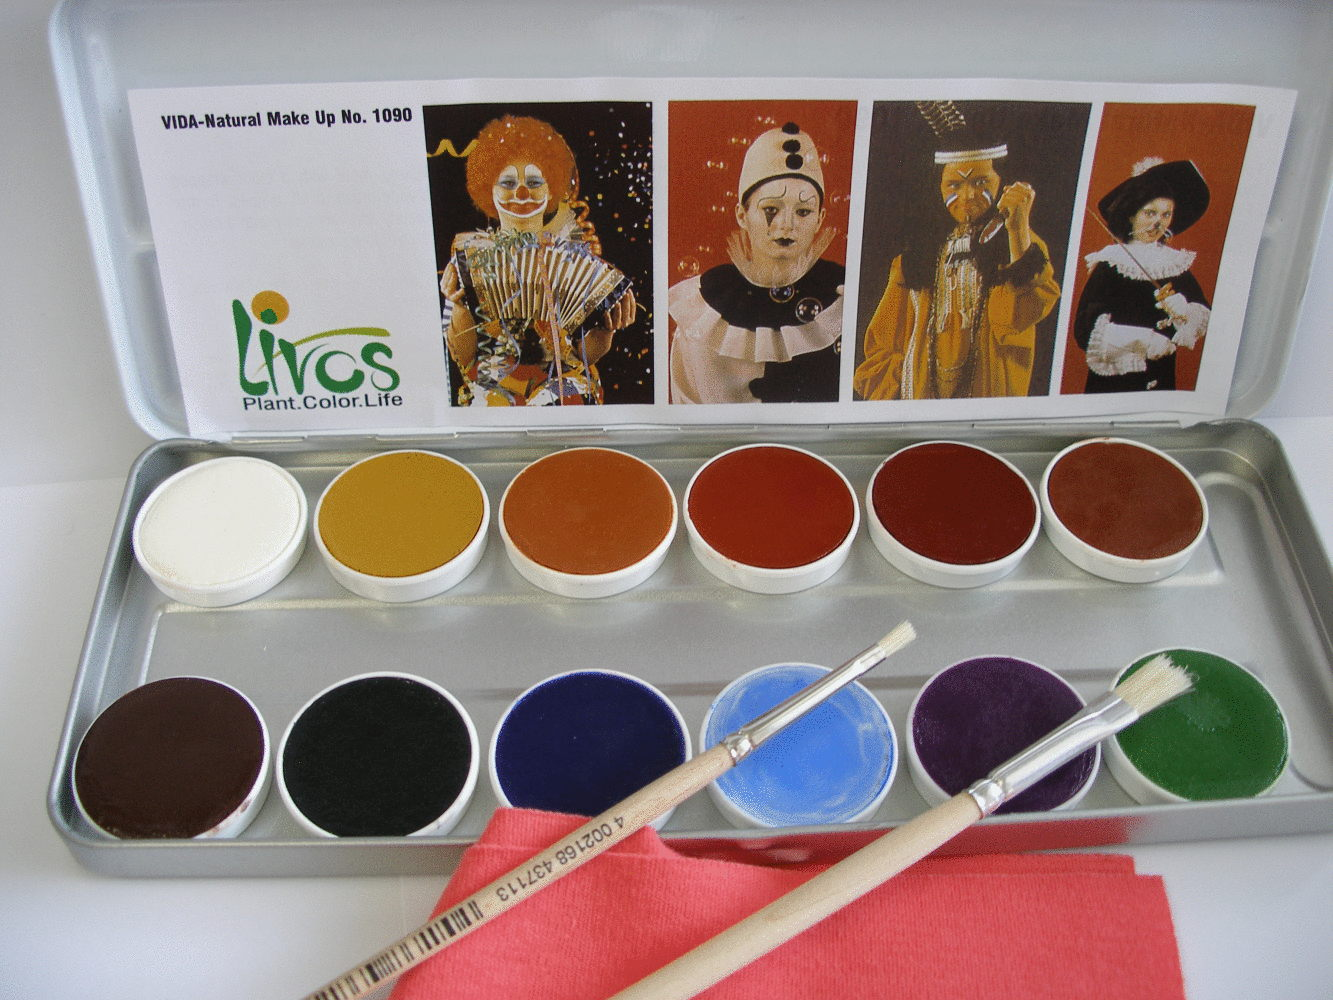 The livos face paints are environmentally friendly non toxic products, safe for babies and kids.